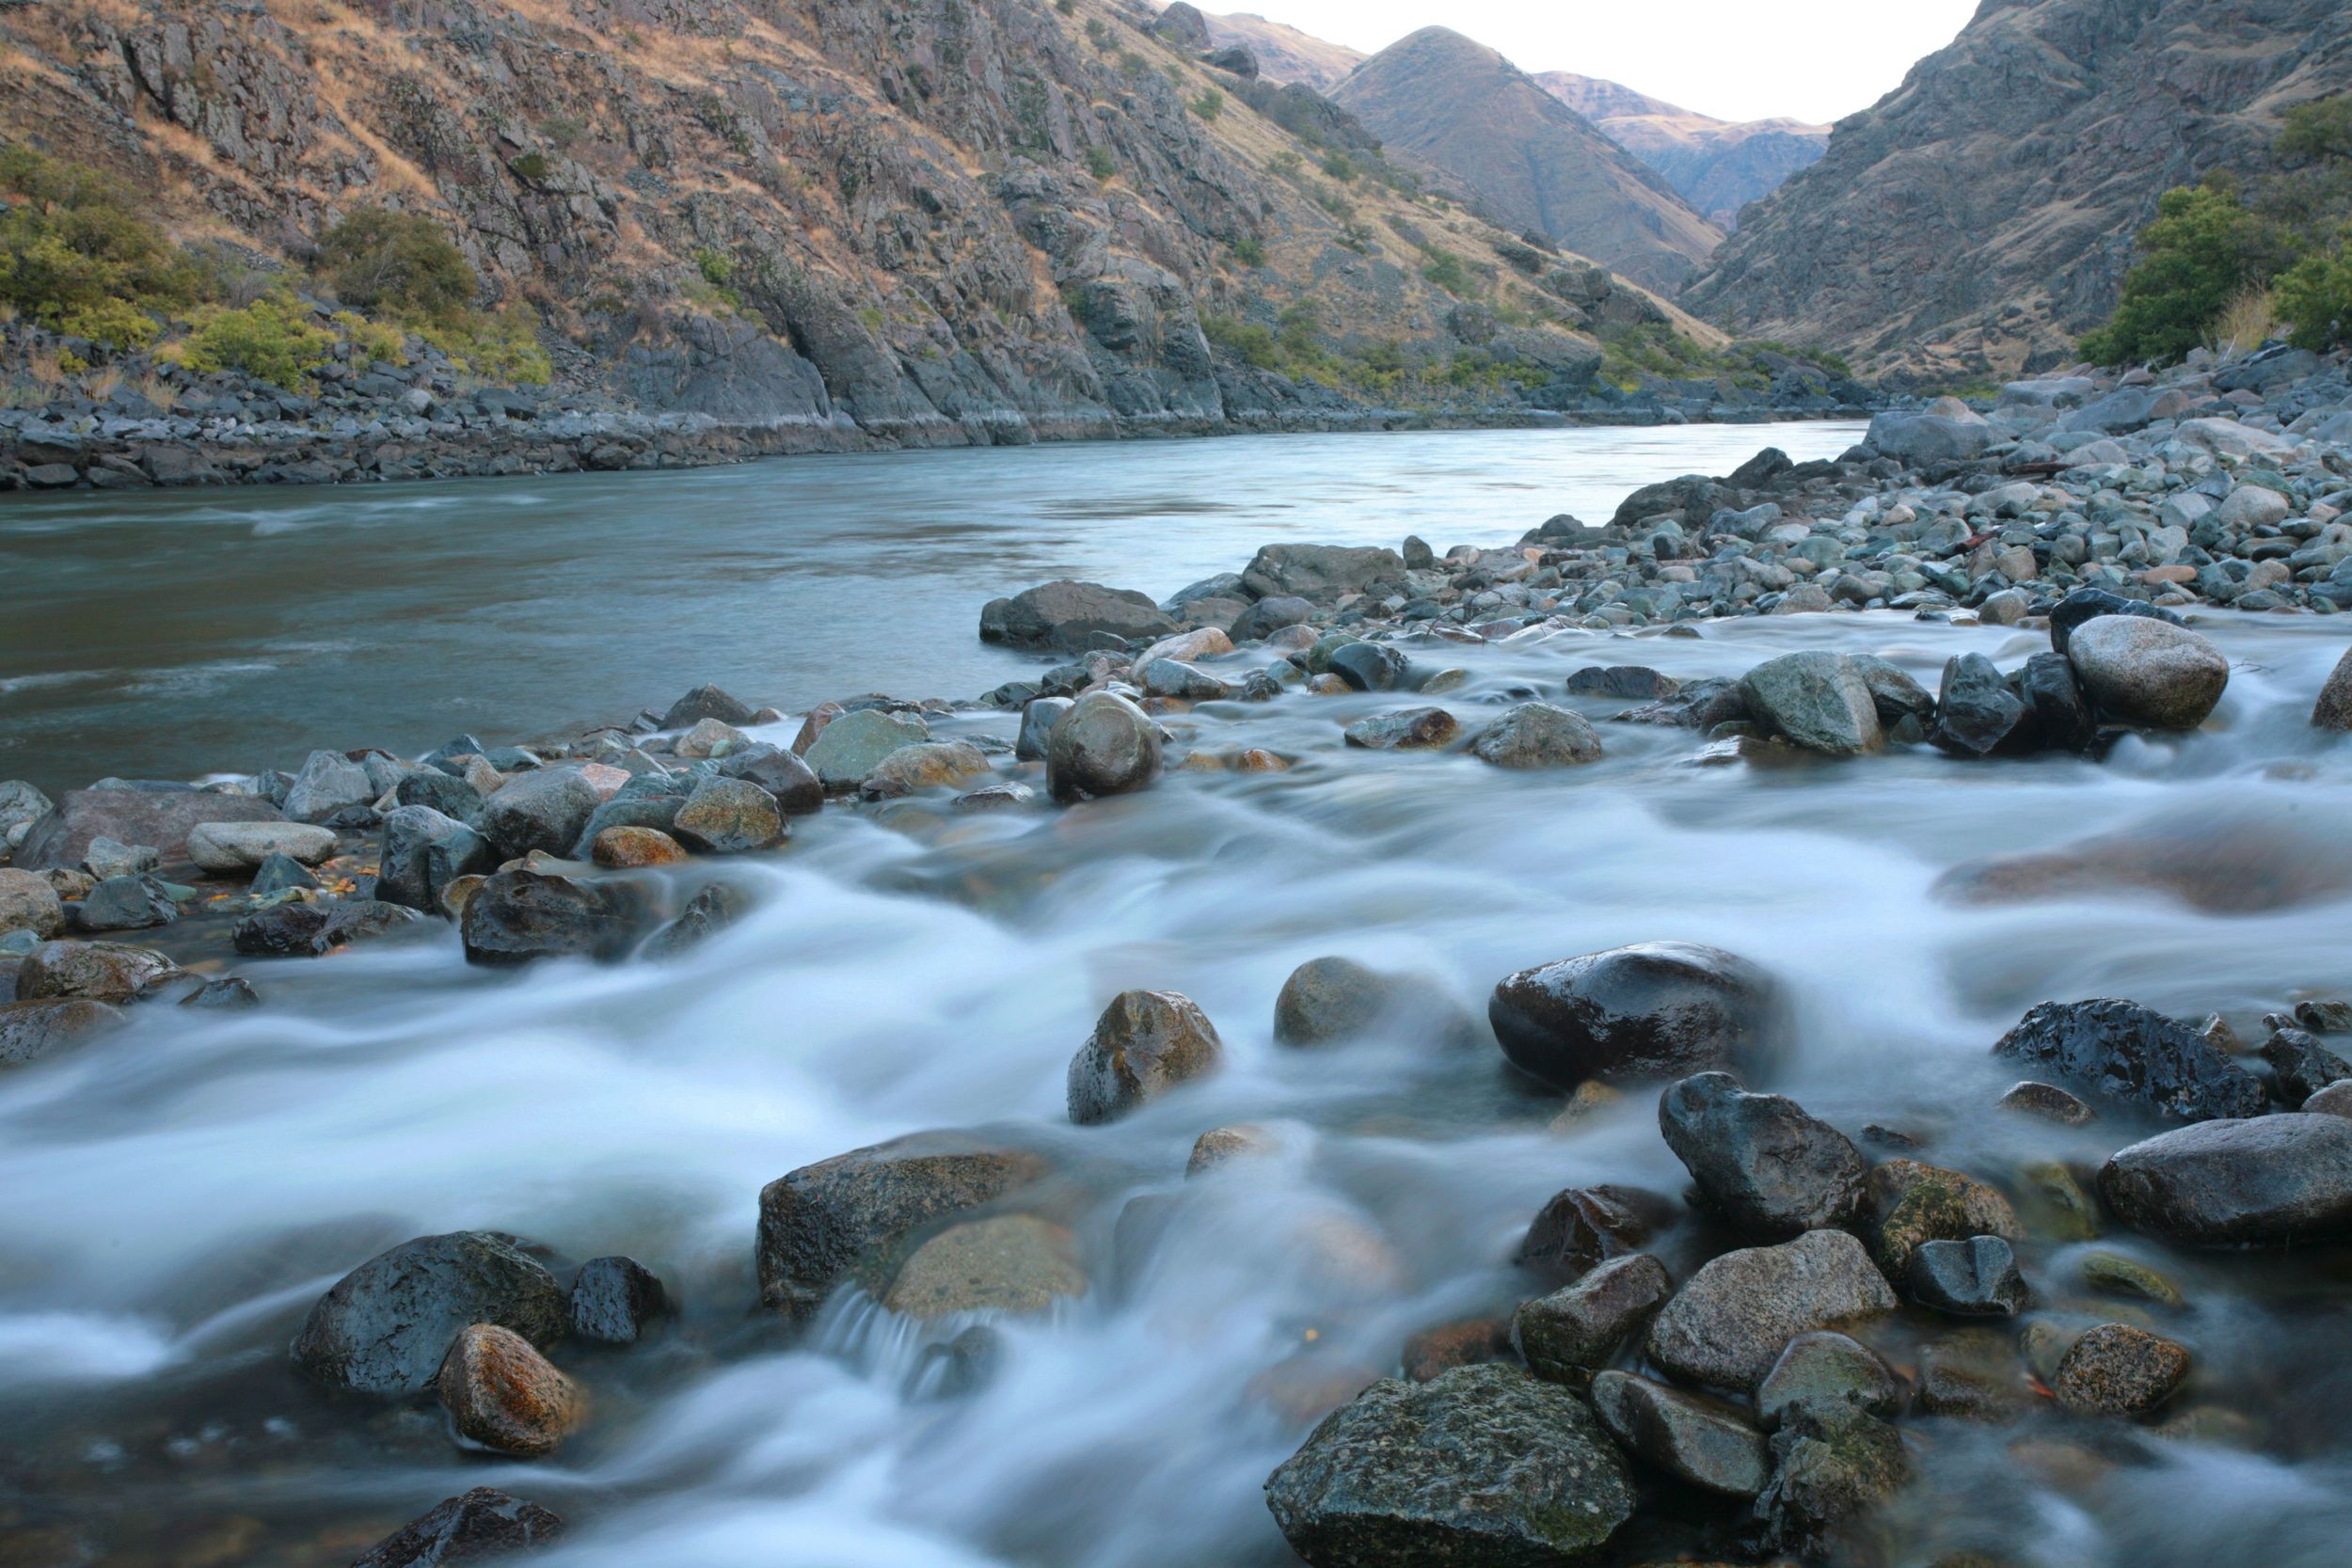 The Wild and Scenic Snake River